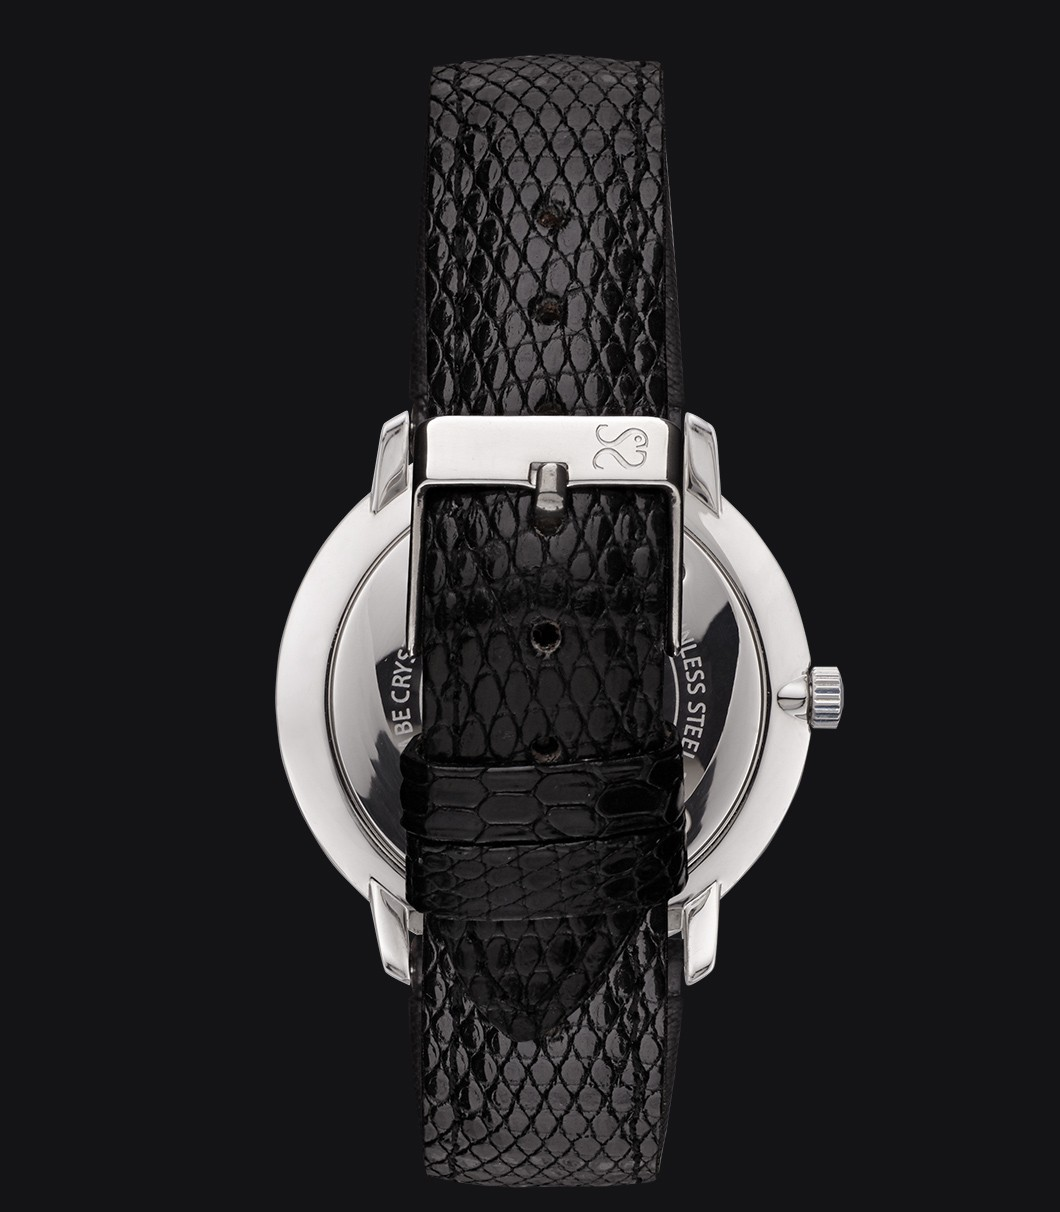 White Watch Lizard Fisherman Snowy Elegance Black